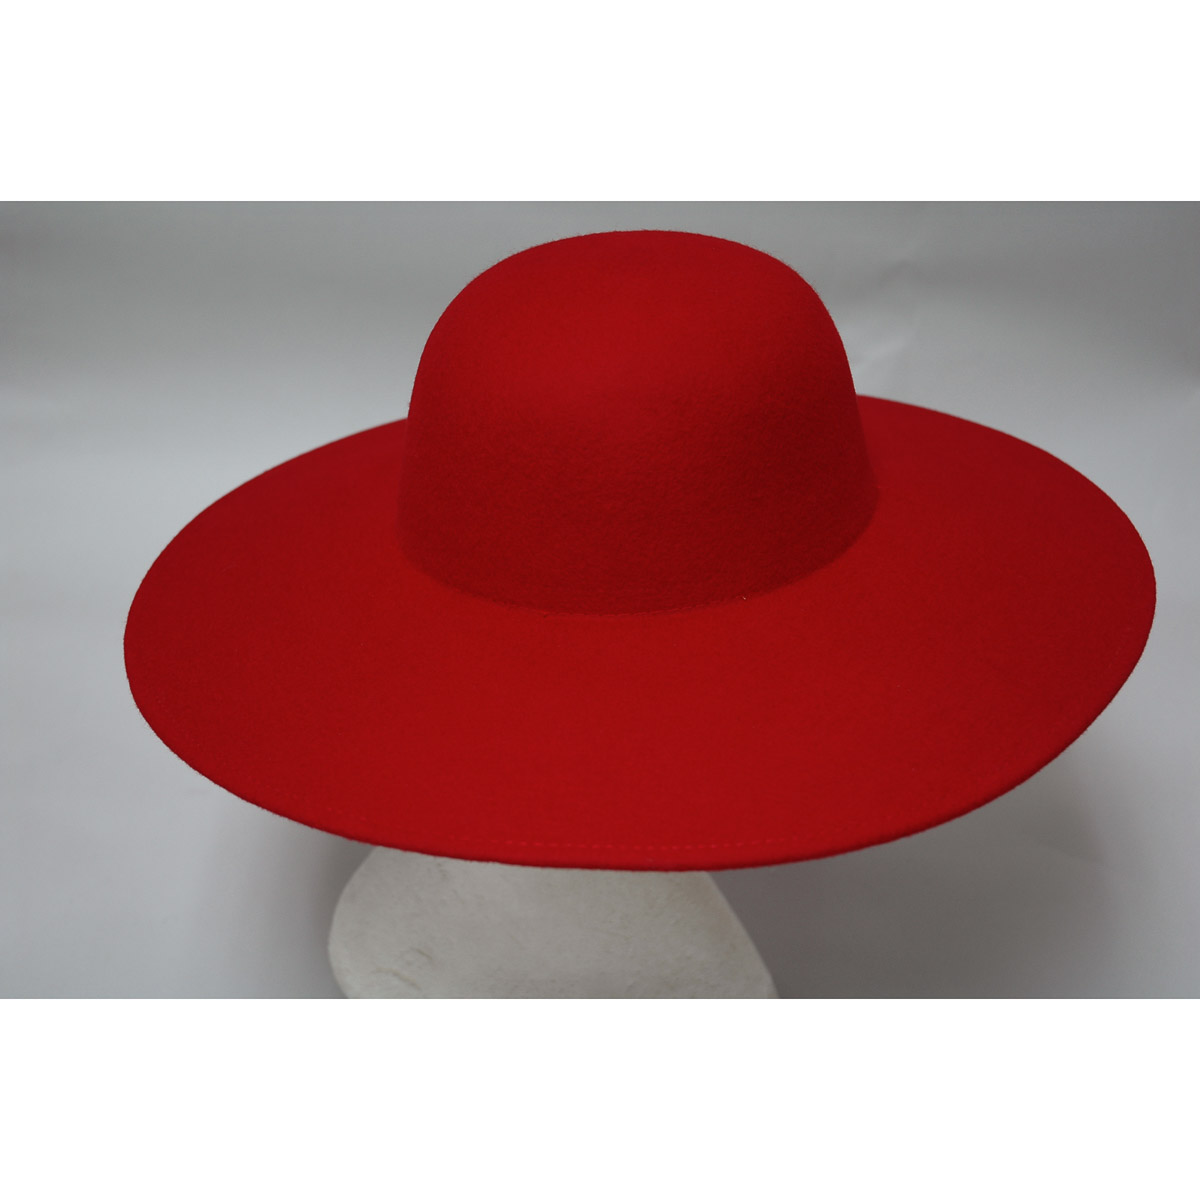 Red hat stock options